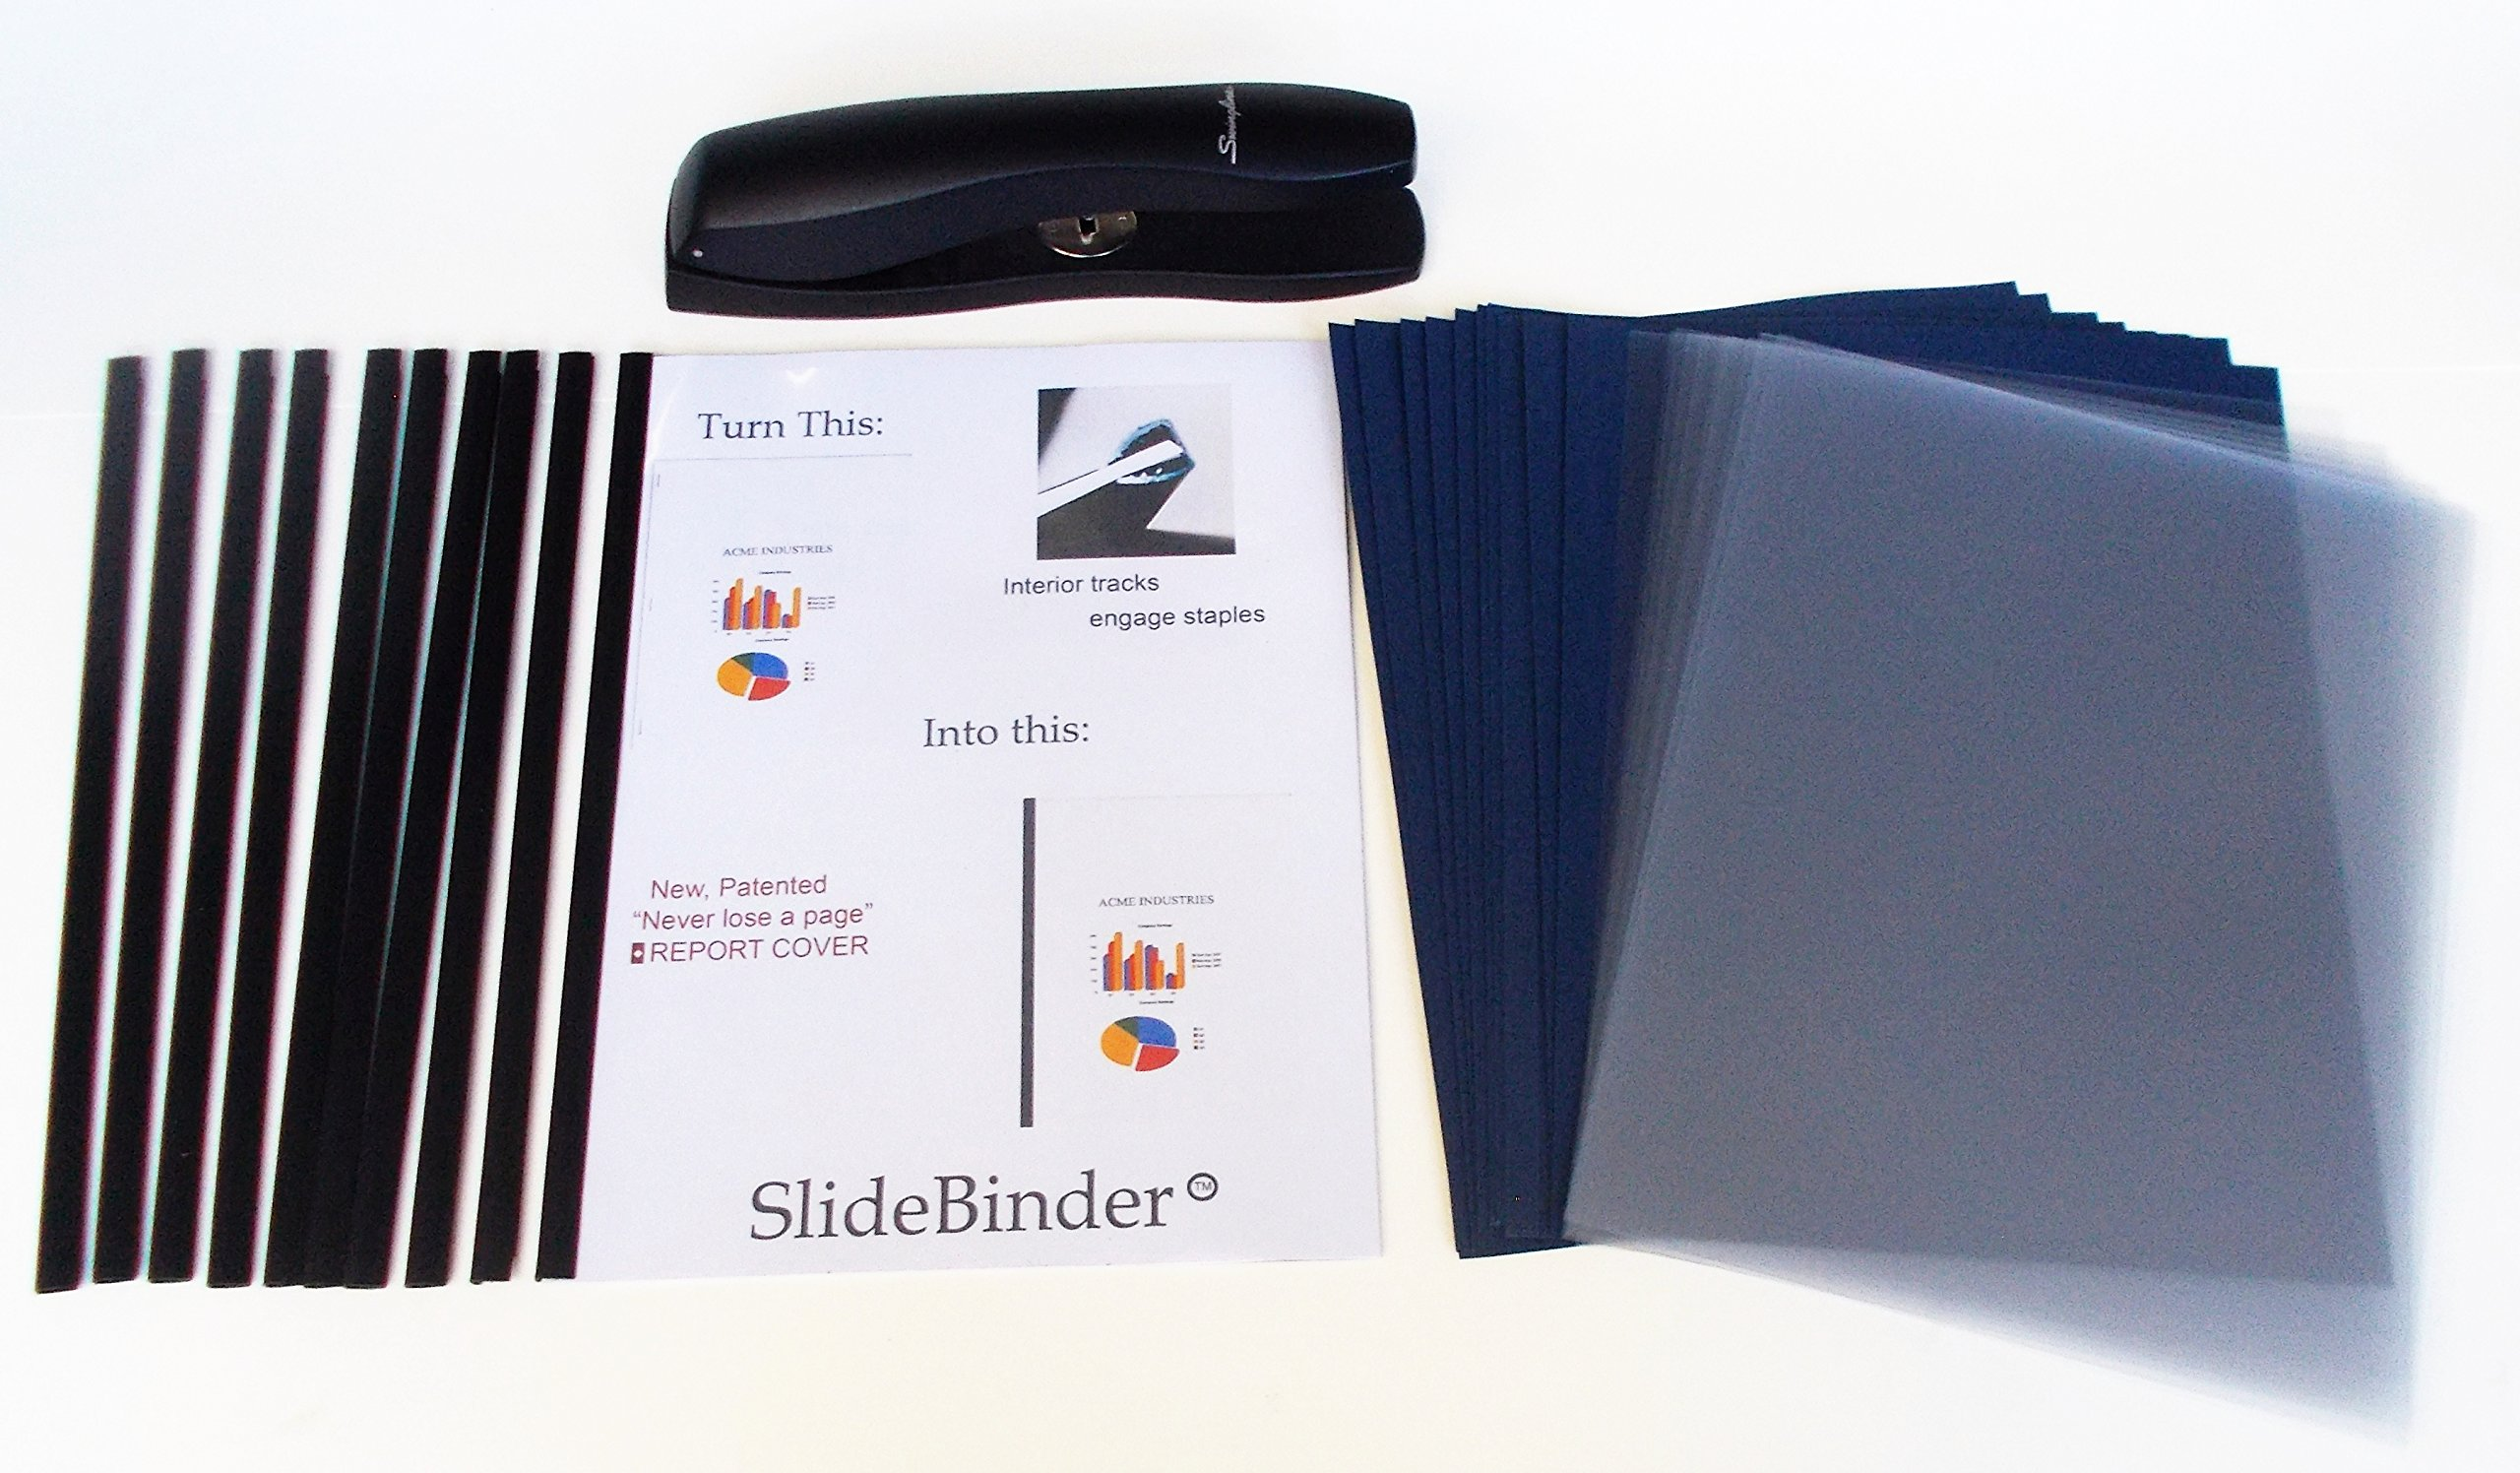 Newly Patented Premium SlideBinder tm Binding Bars with CLEAR FRONT and NAVY LINEN cardstock back covers. LARGE SIZE for 35-50 sheets of 20lb paper (8 COVER SETS)